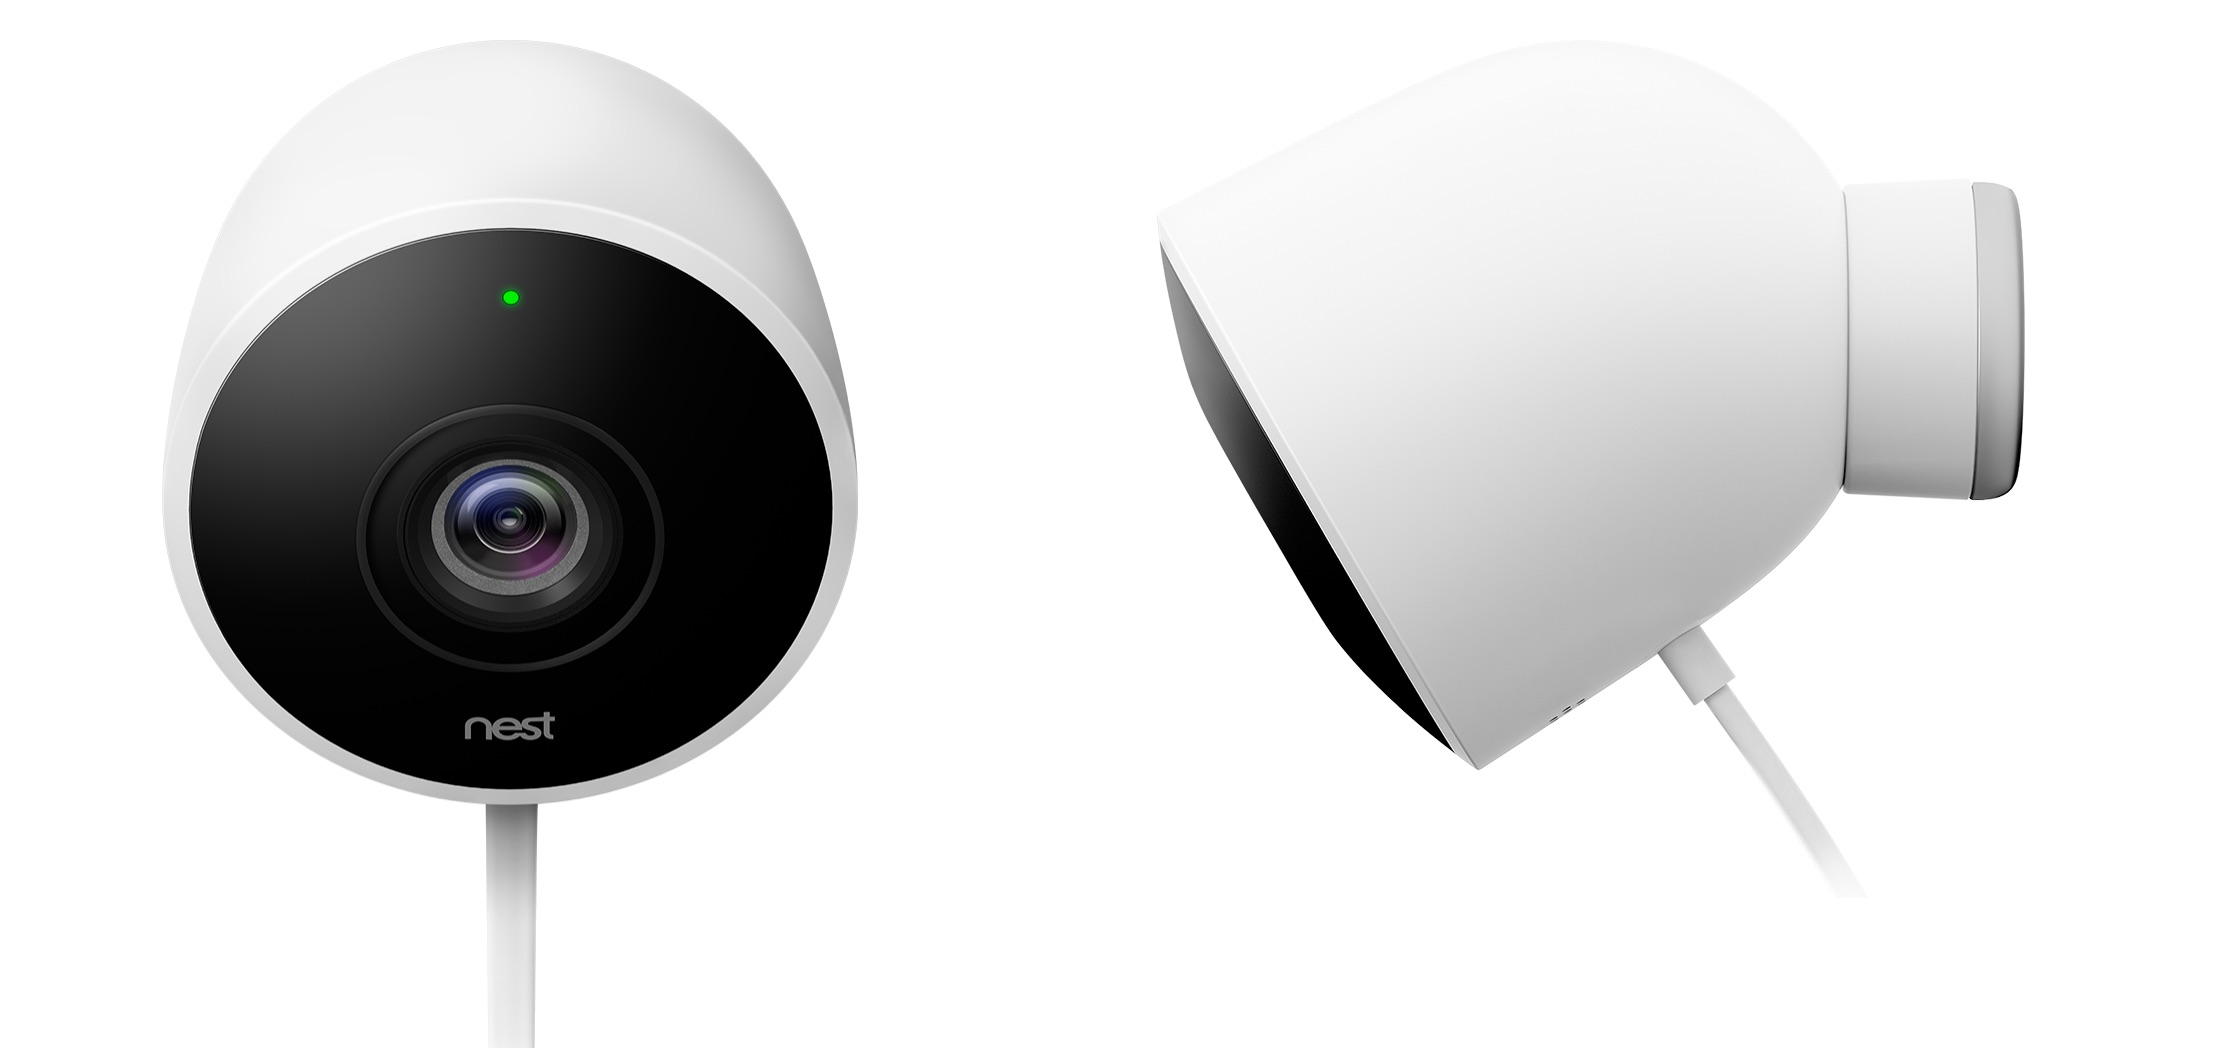 Nest Adds An Outside Security Camera To Its Lineup